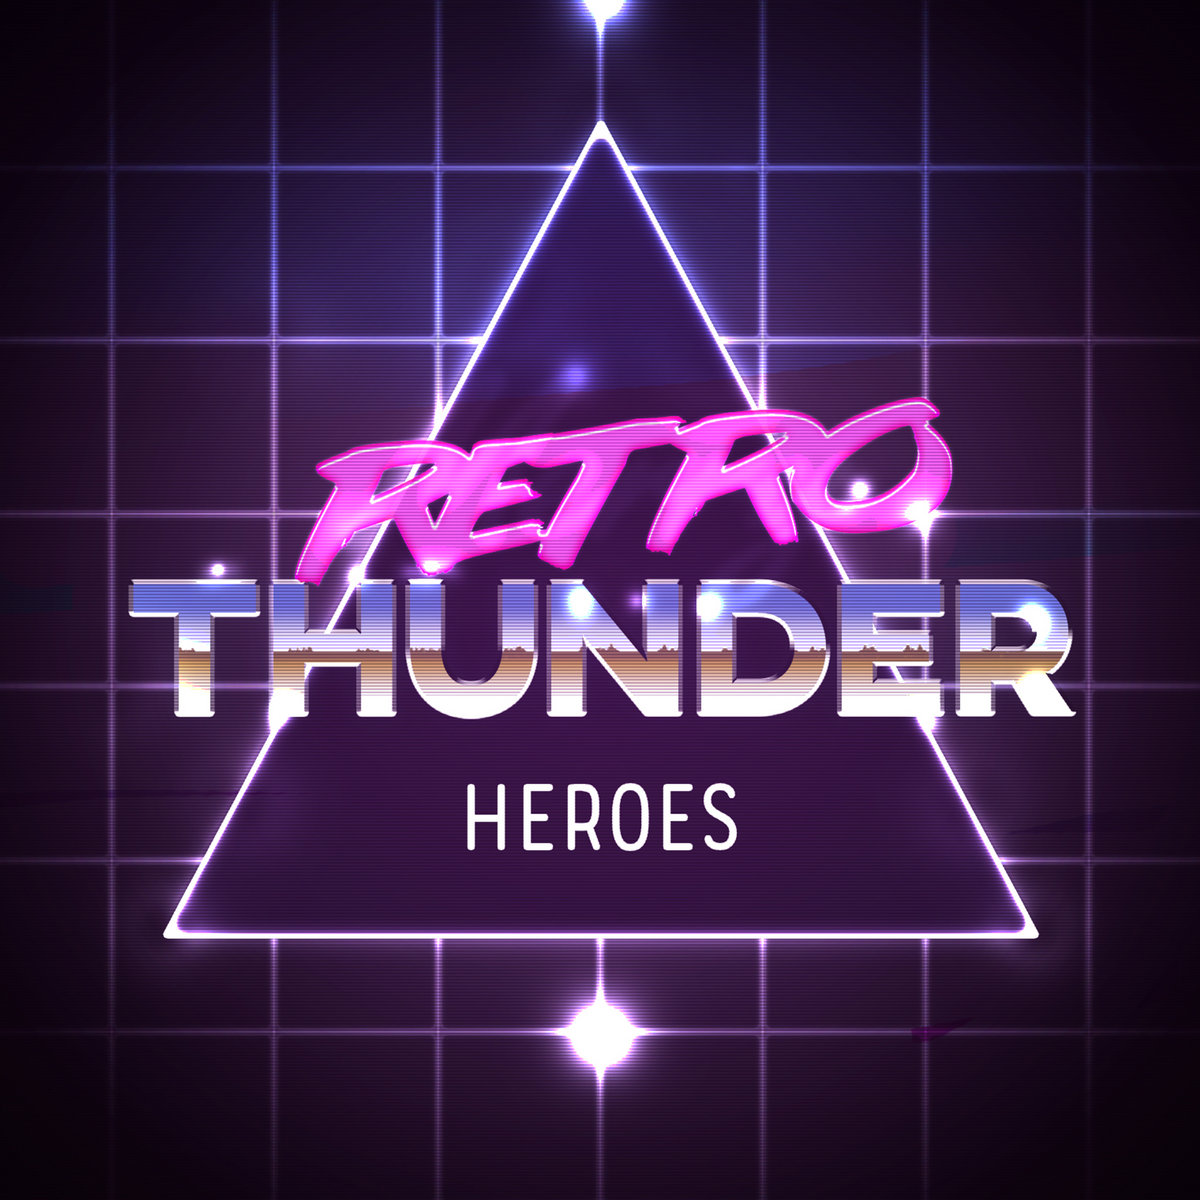 from heroes by retro thunder